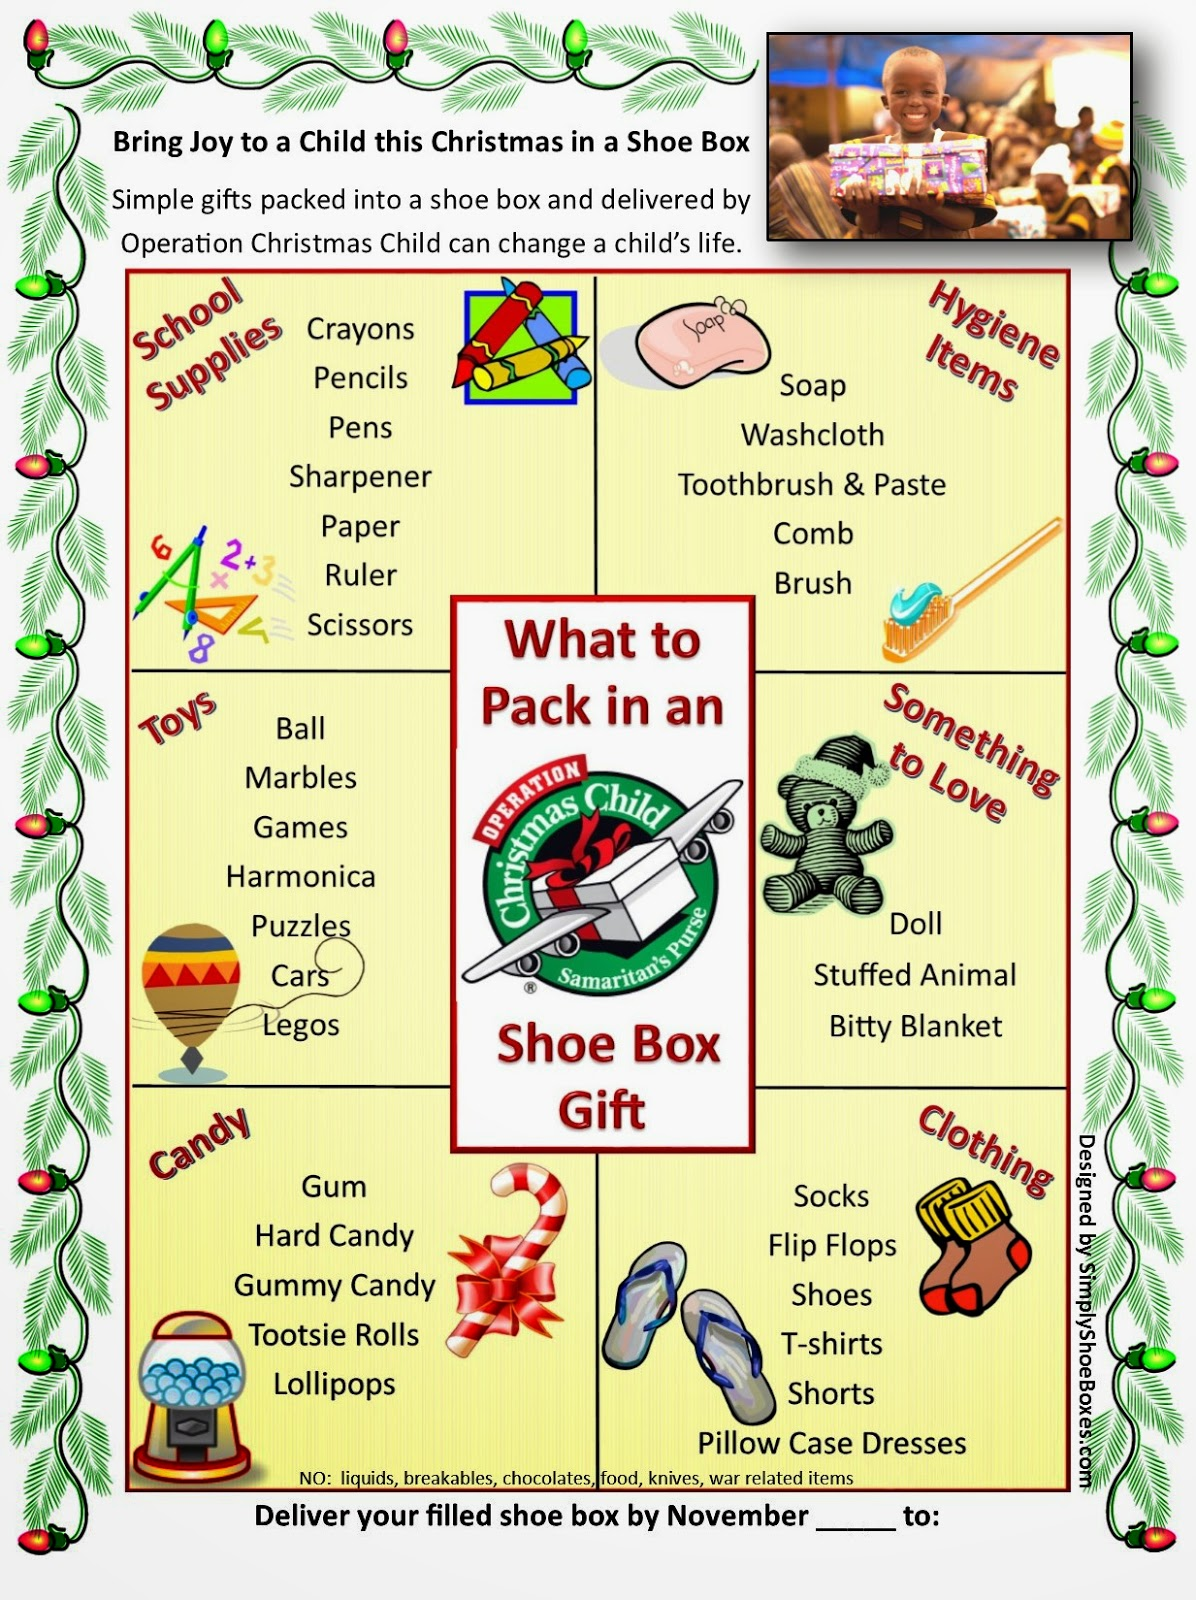 Operation Christmas Child Craft Ideas Part - 40: Operation Christmas Child What To Pack In A Shoe Box Poster